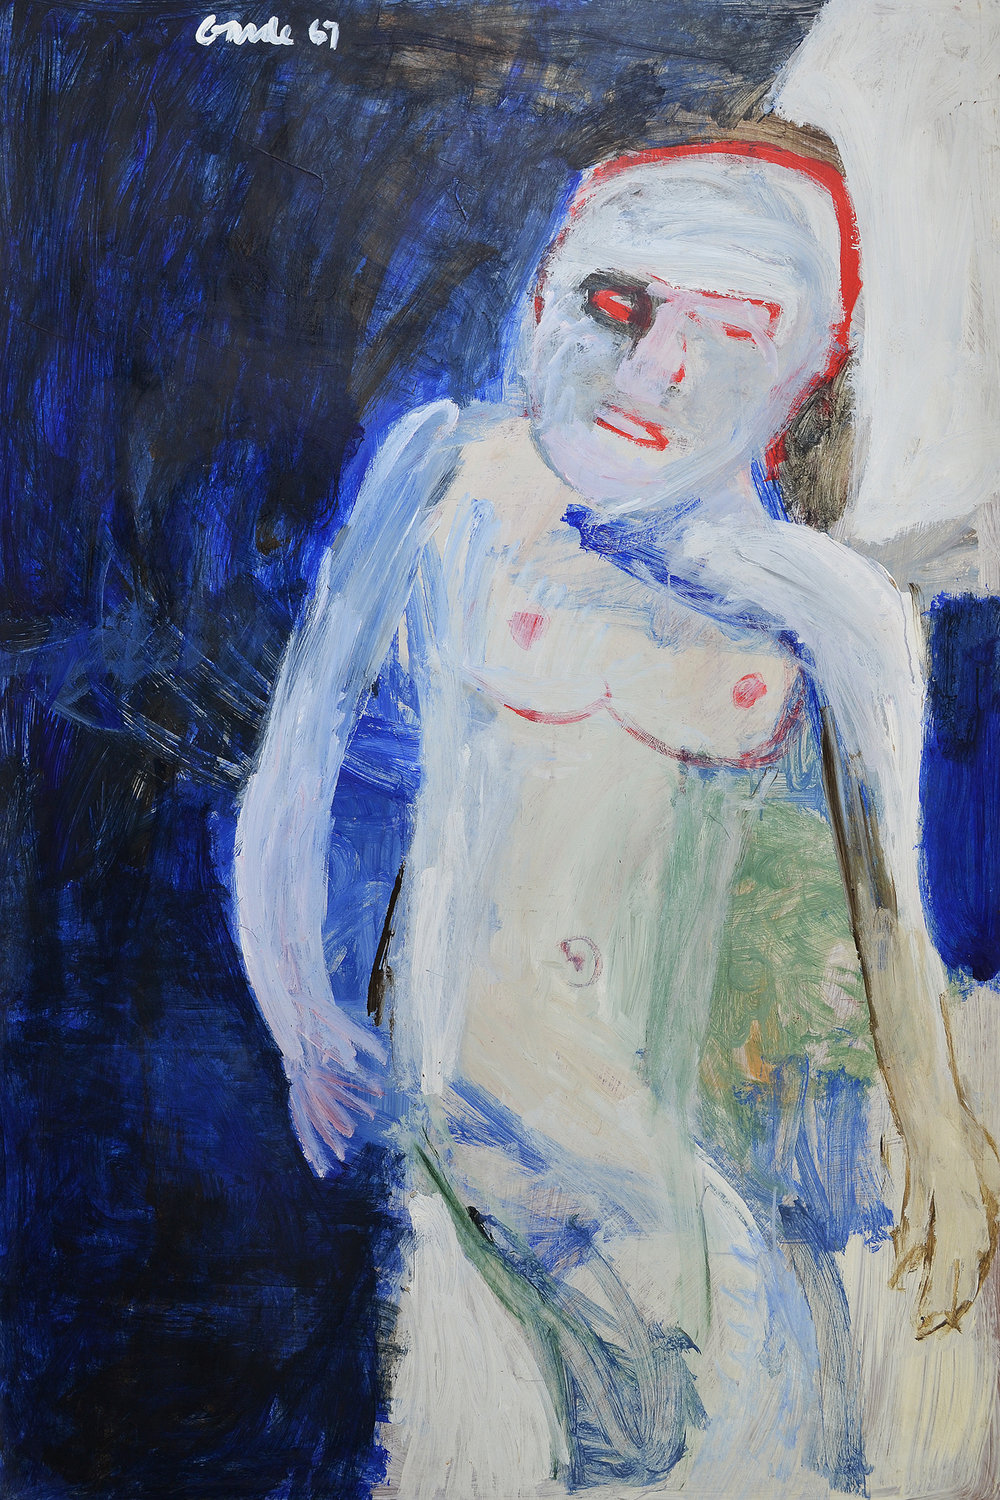 Standing Male (Nude) , 1967. Oil on hardboard (masonite), 72 x 48 in. (183 x 122 cm.)